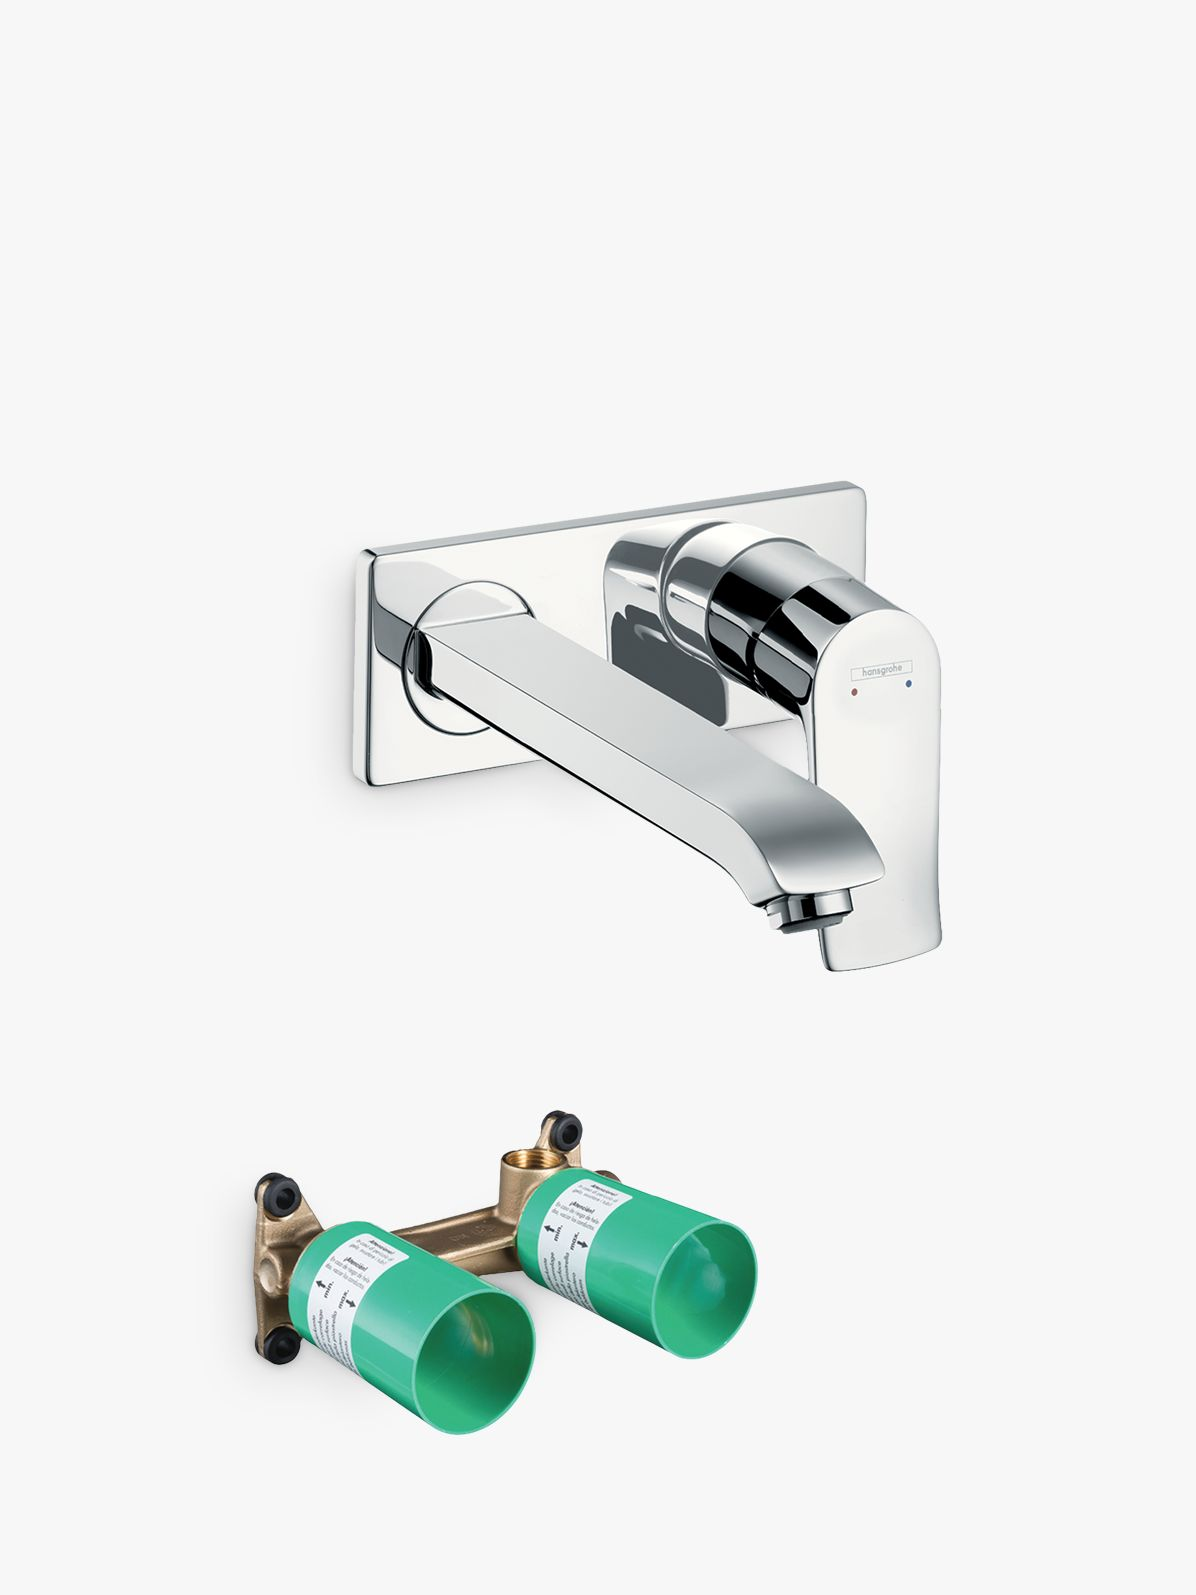 Hansgrohe Hansgrohe Metris Single Lever Bathroom Basin Mixer Tap with Basic Set, Chrome